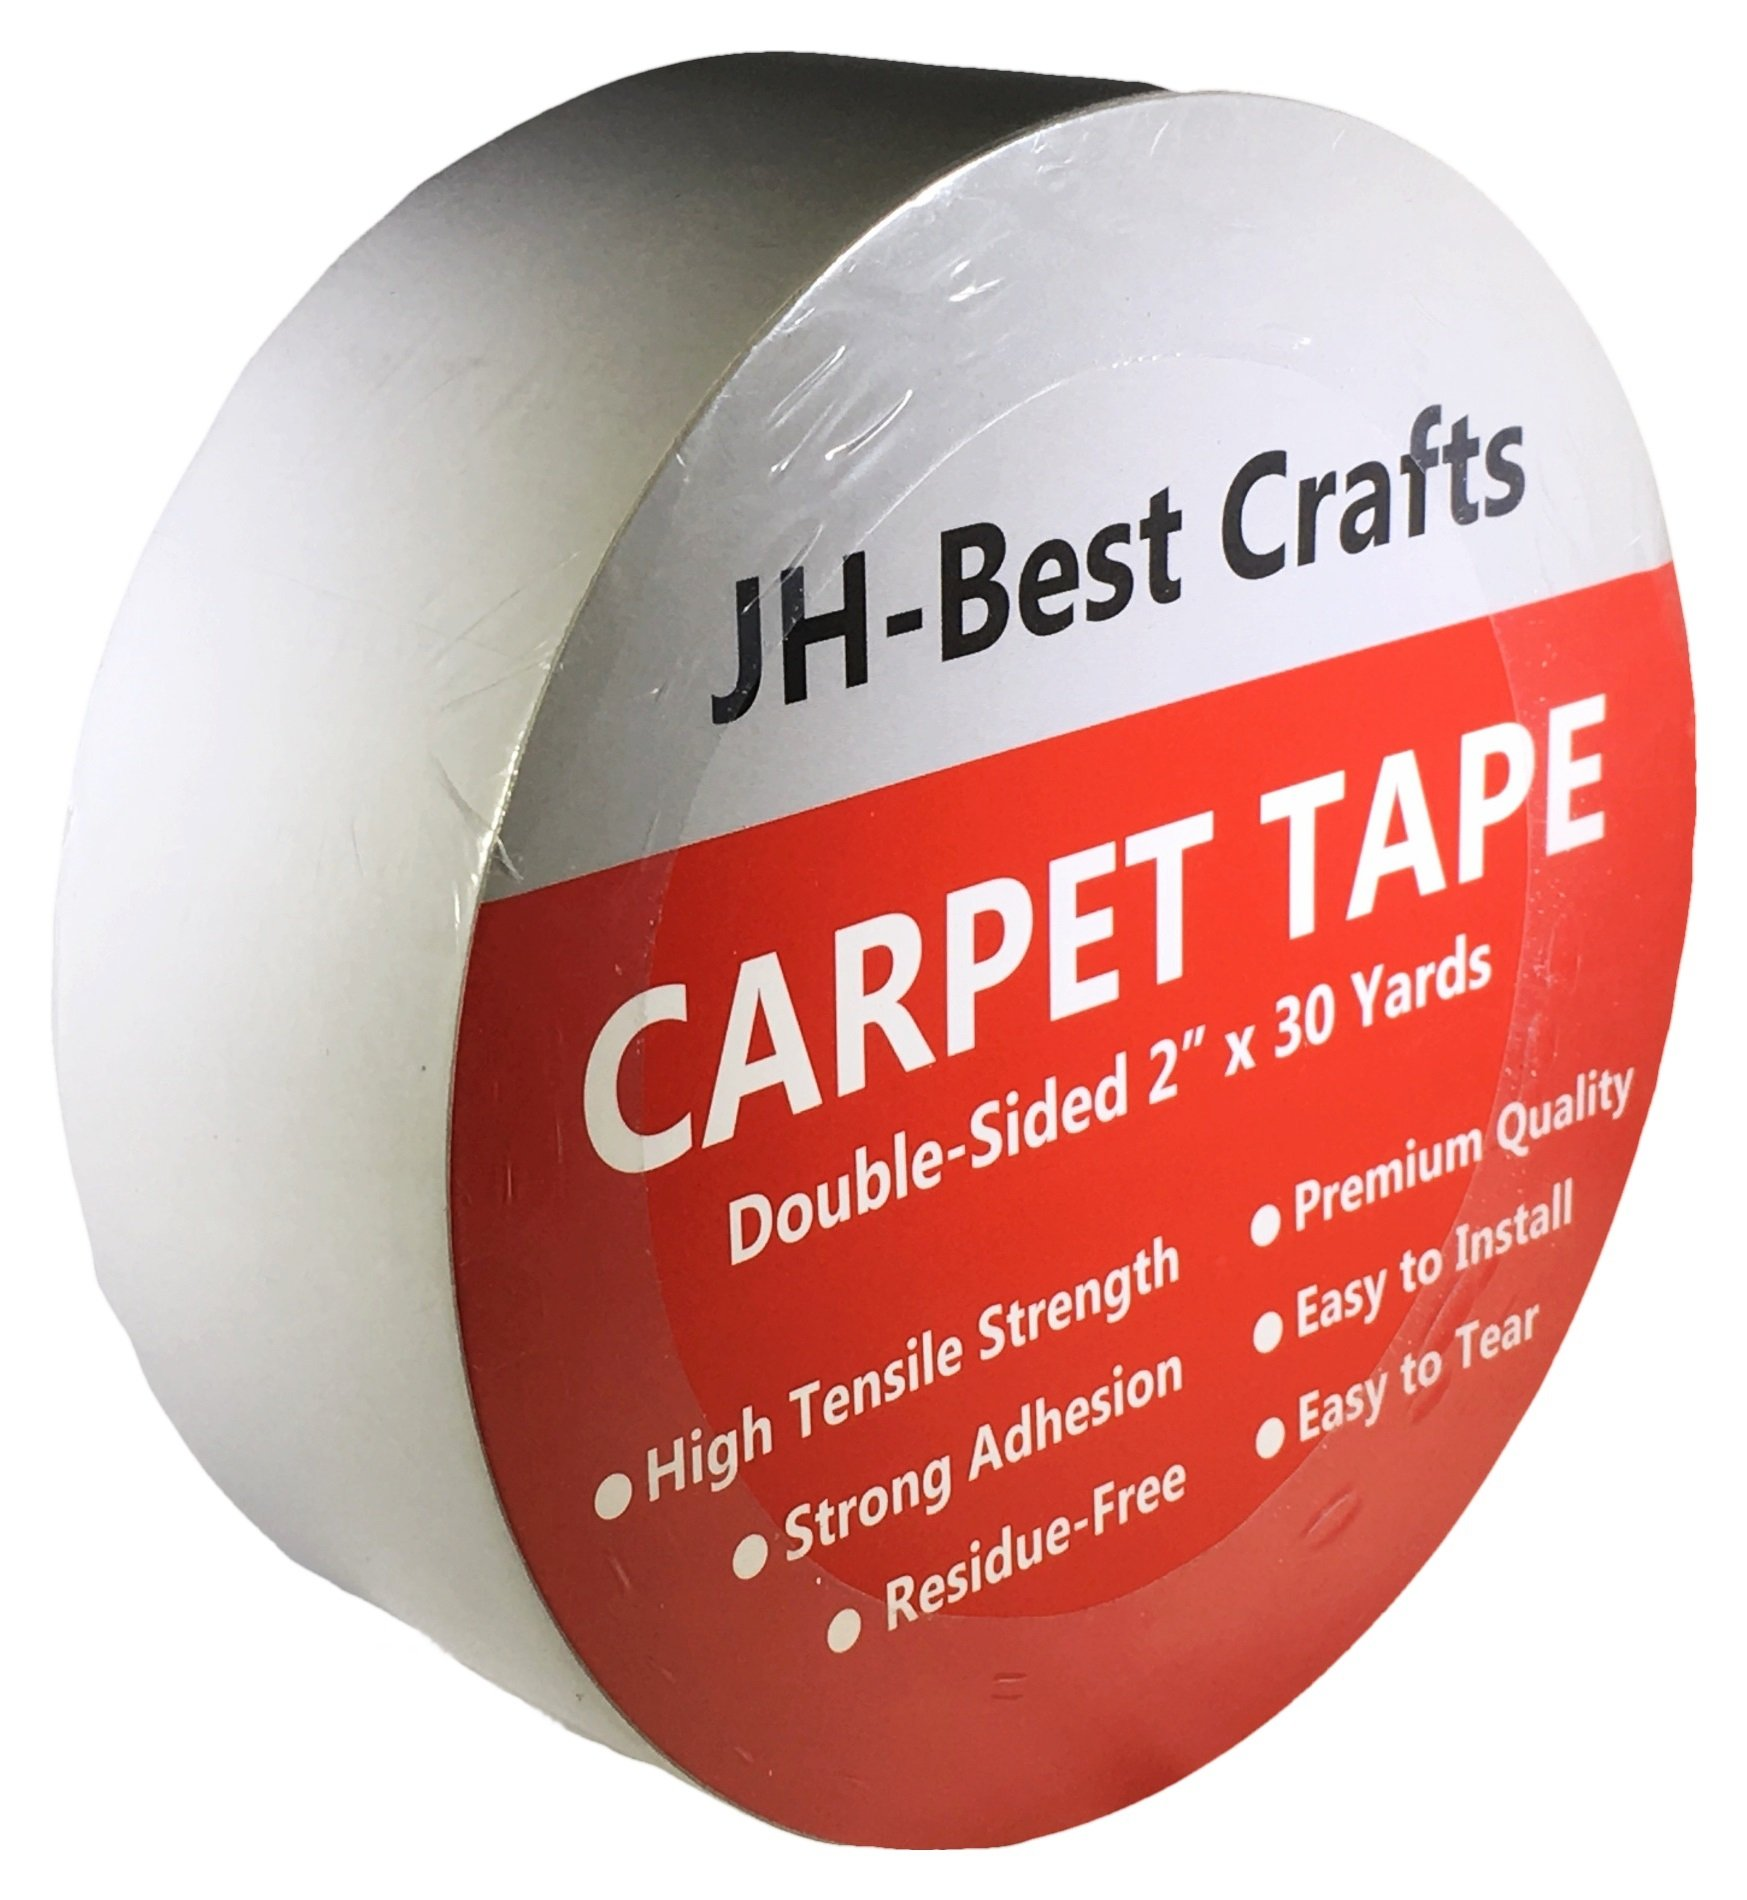 Double Sided Carpet Tape - Multi-Purpose Anti-Slip, 2-inch by 30 Yards